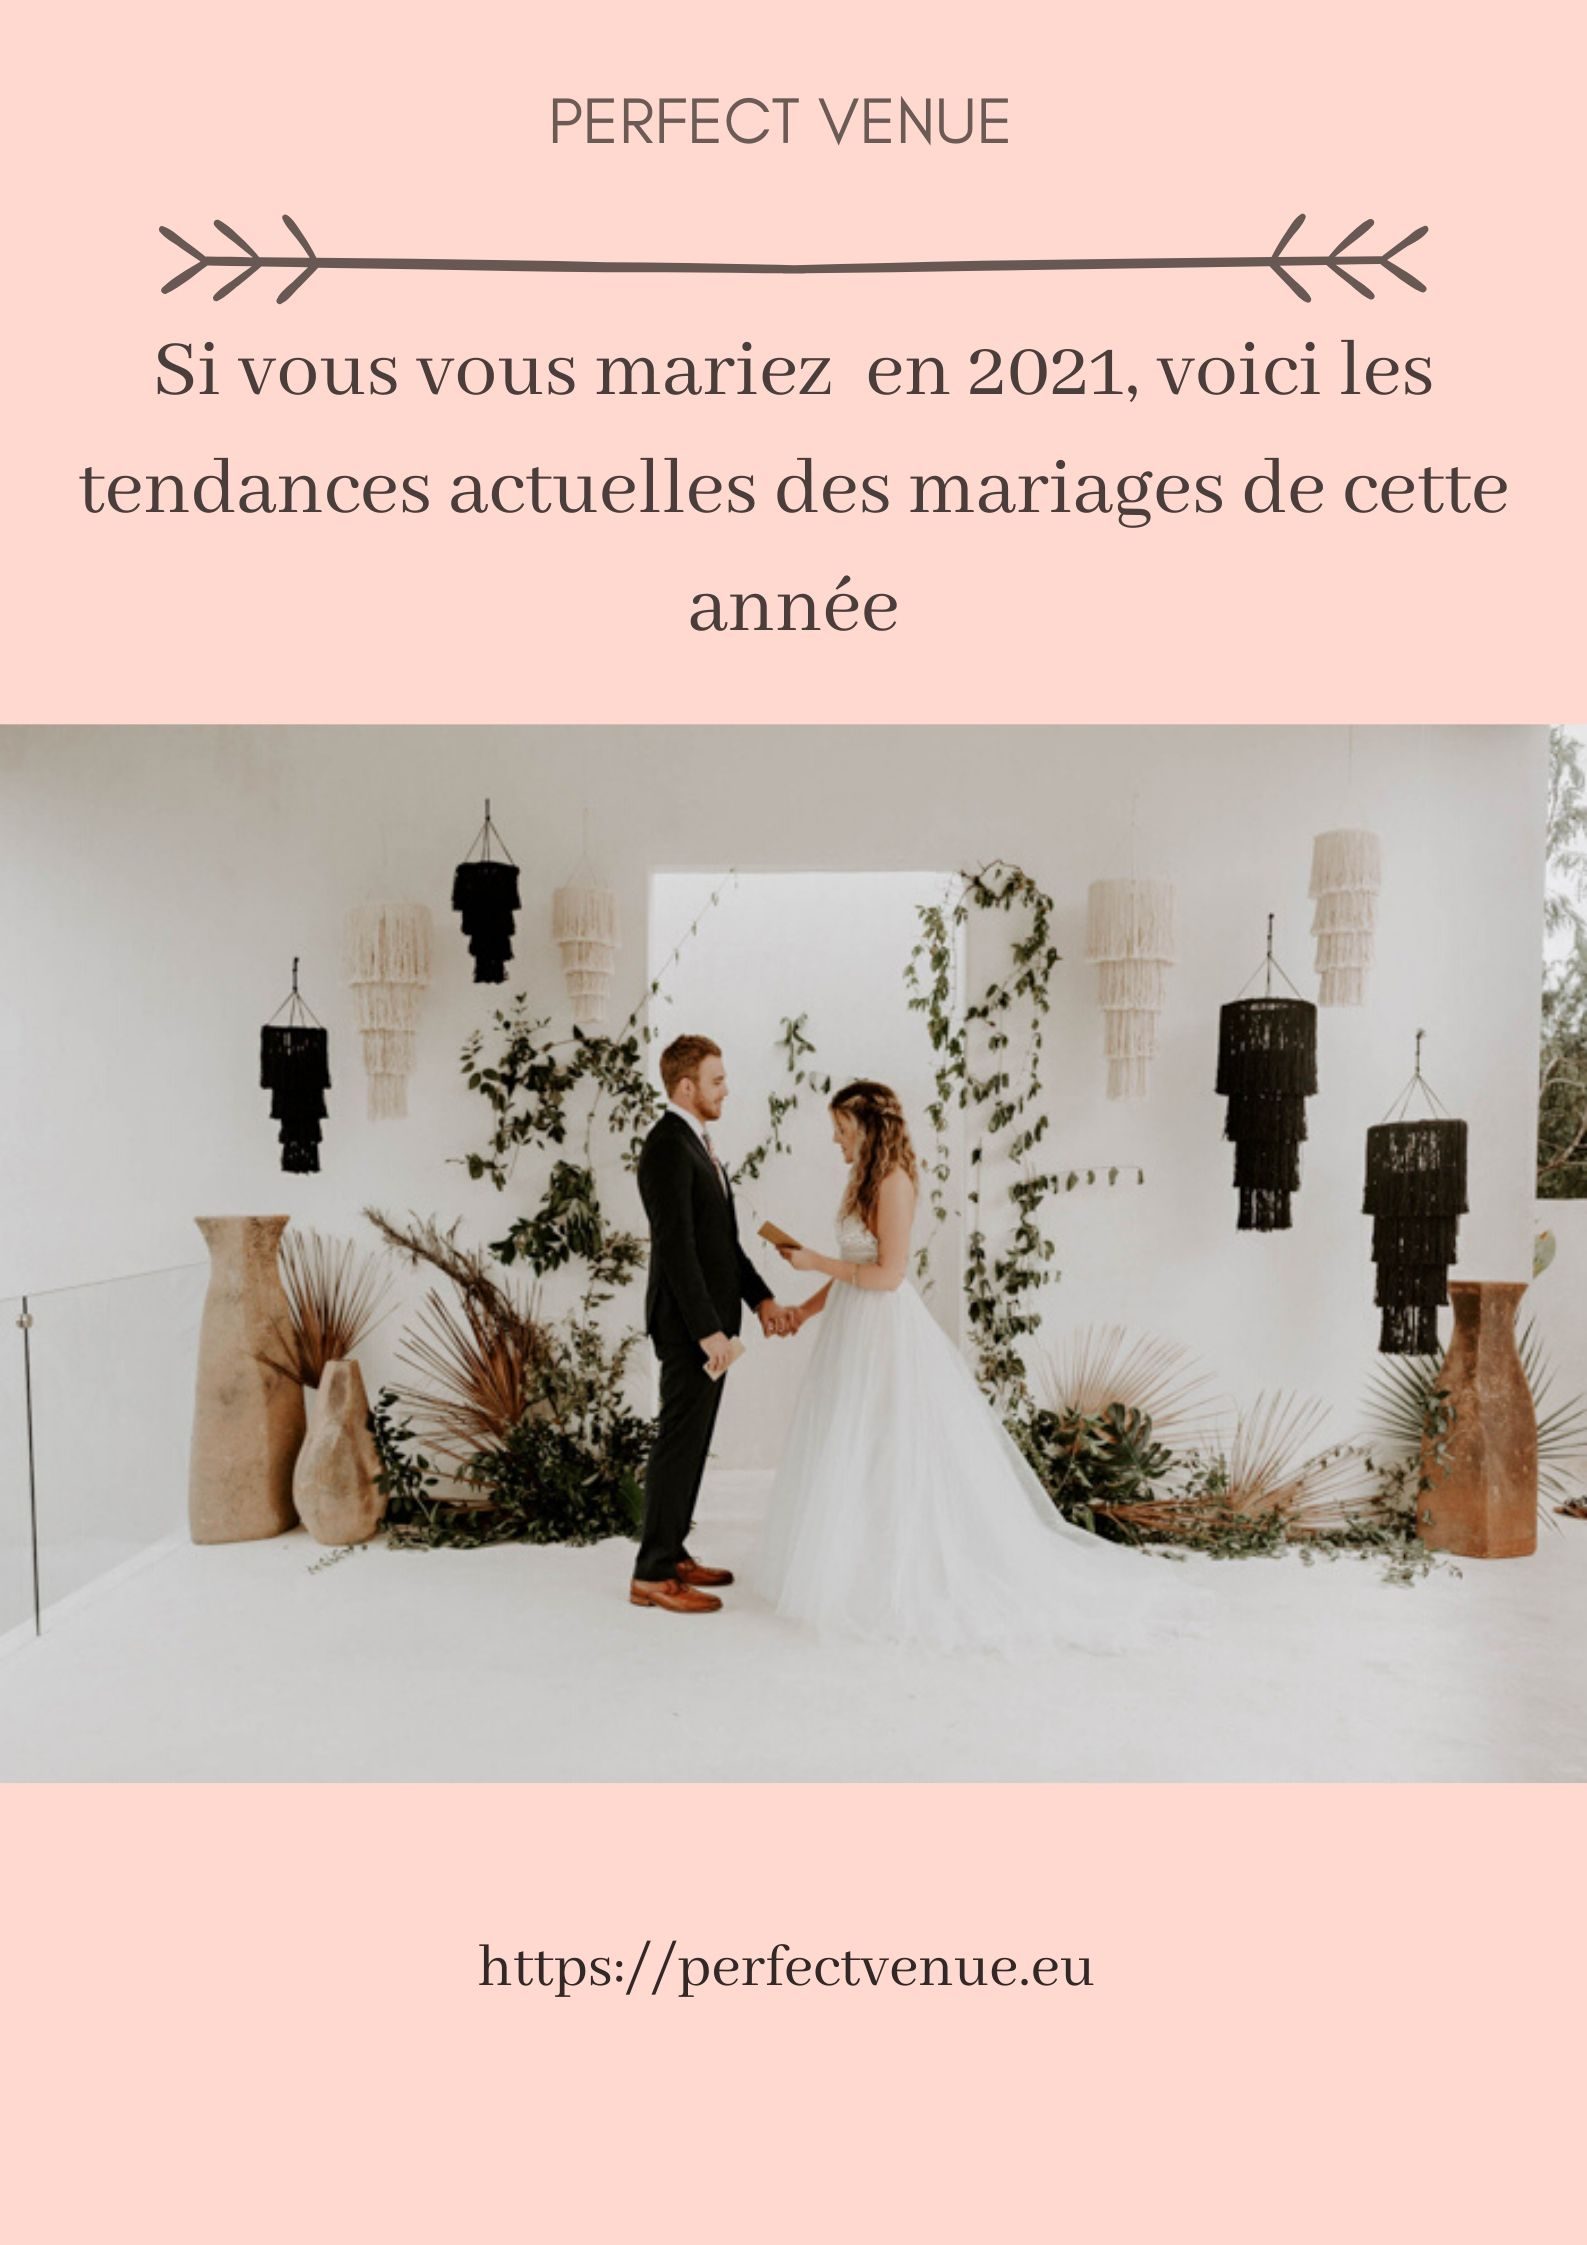 If you are getting married in 2021, here are the trends that will dominate the weddings of this year